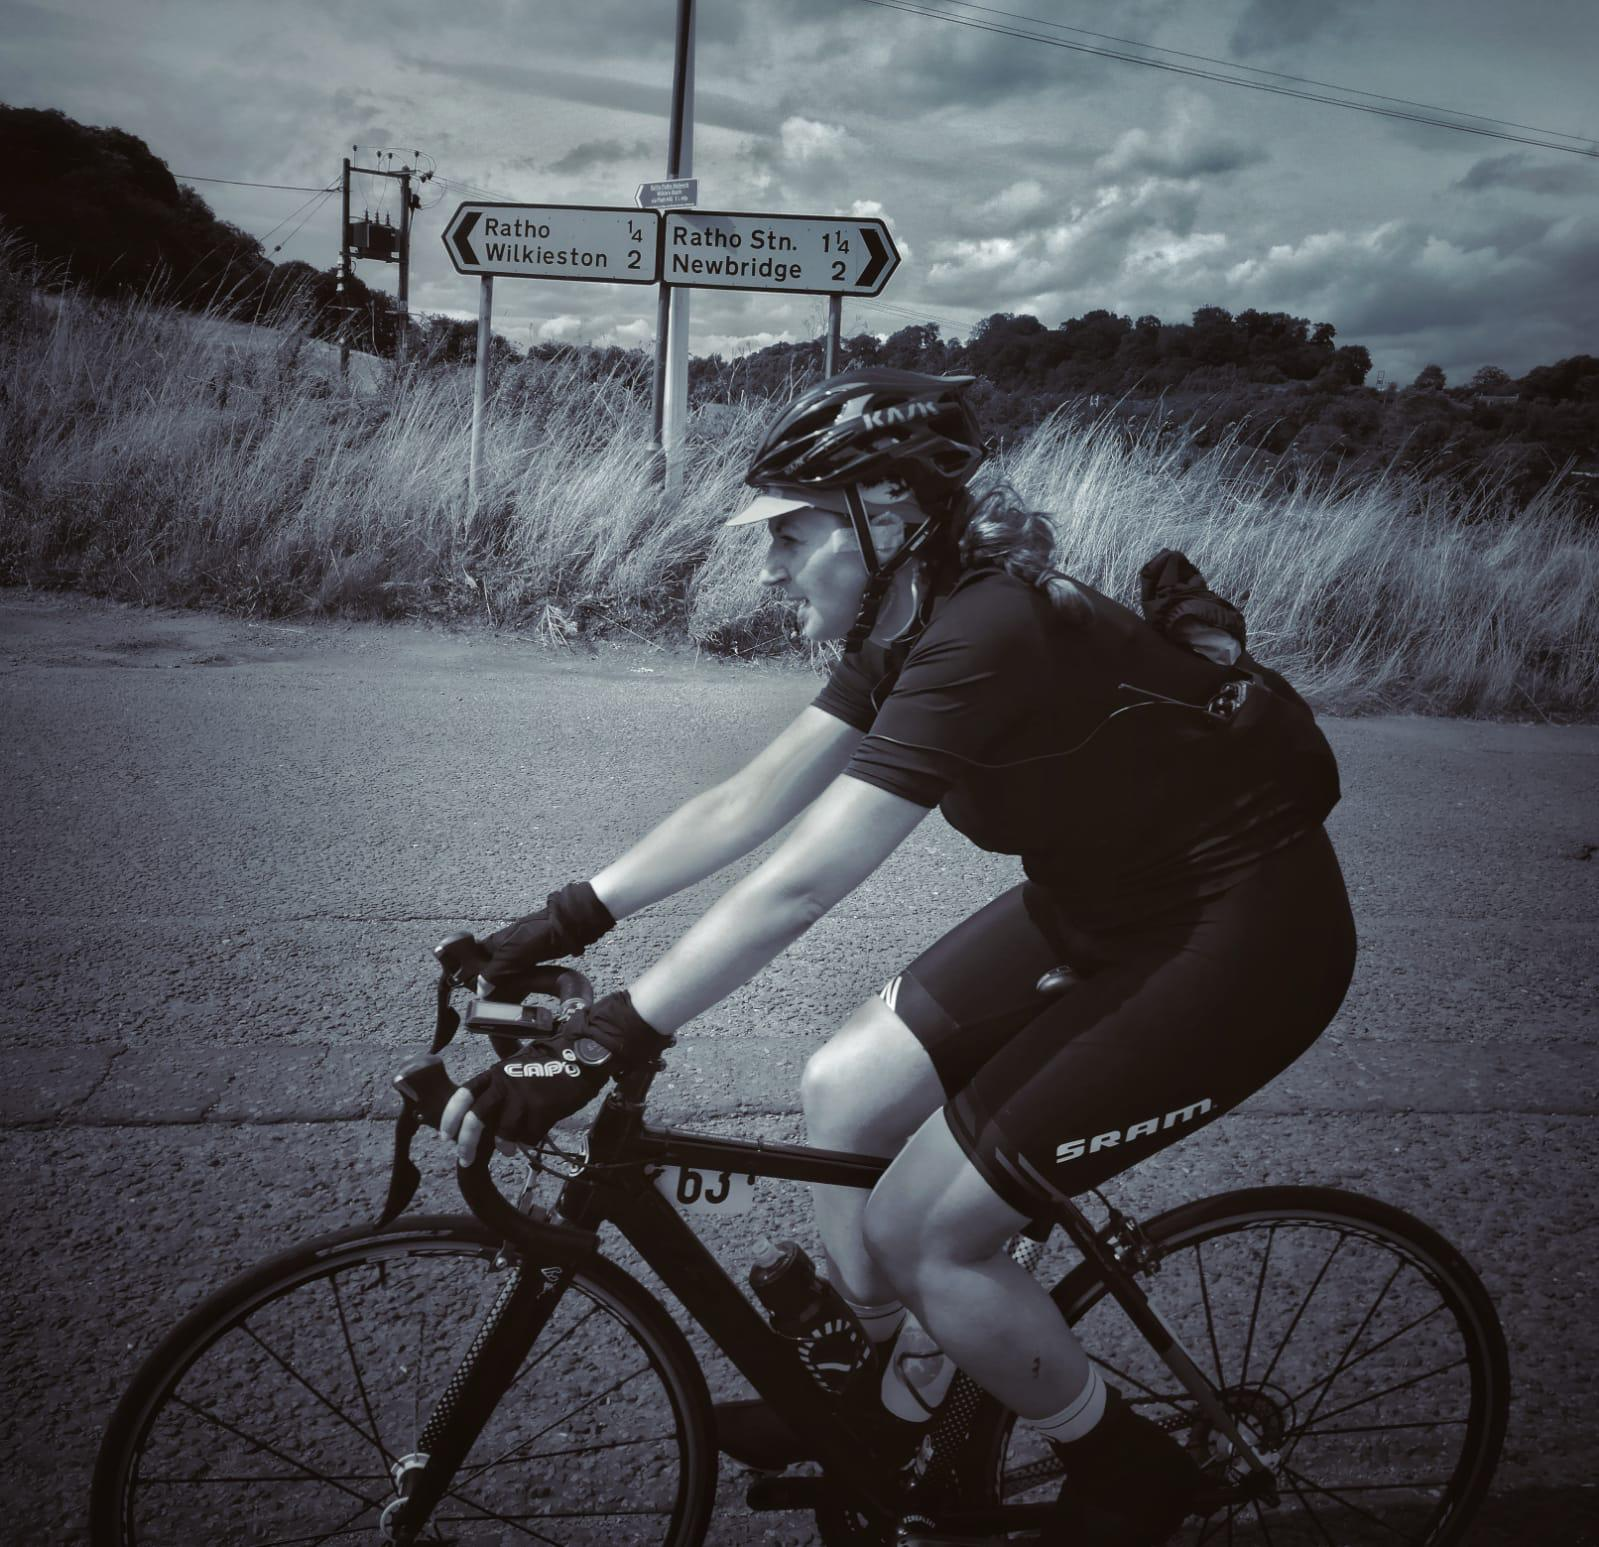 """Numb Feet, Numb Fingers"" Read Top Kat's Day 3&4 Blog As She Cycles JOGLE"